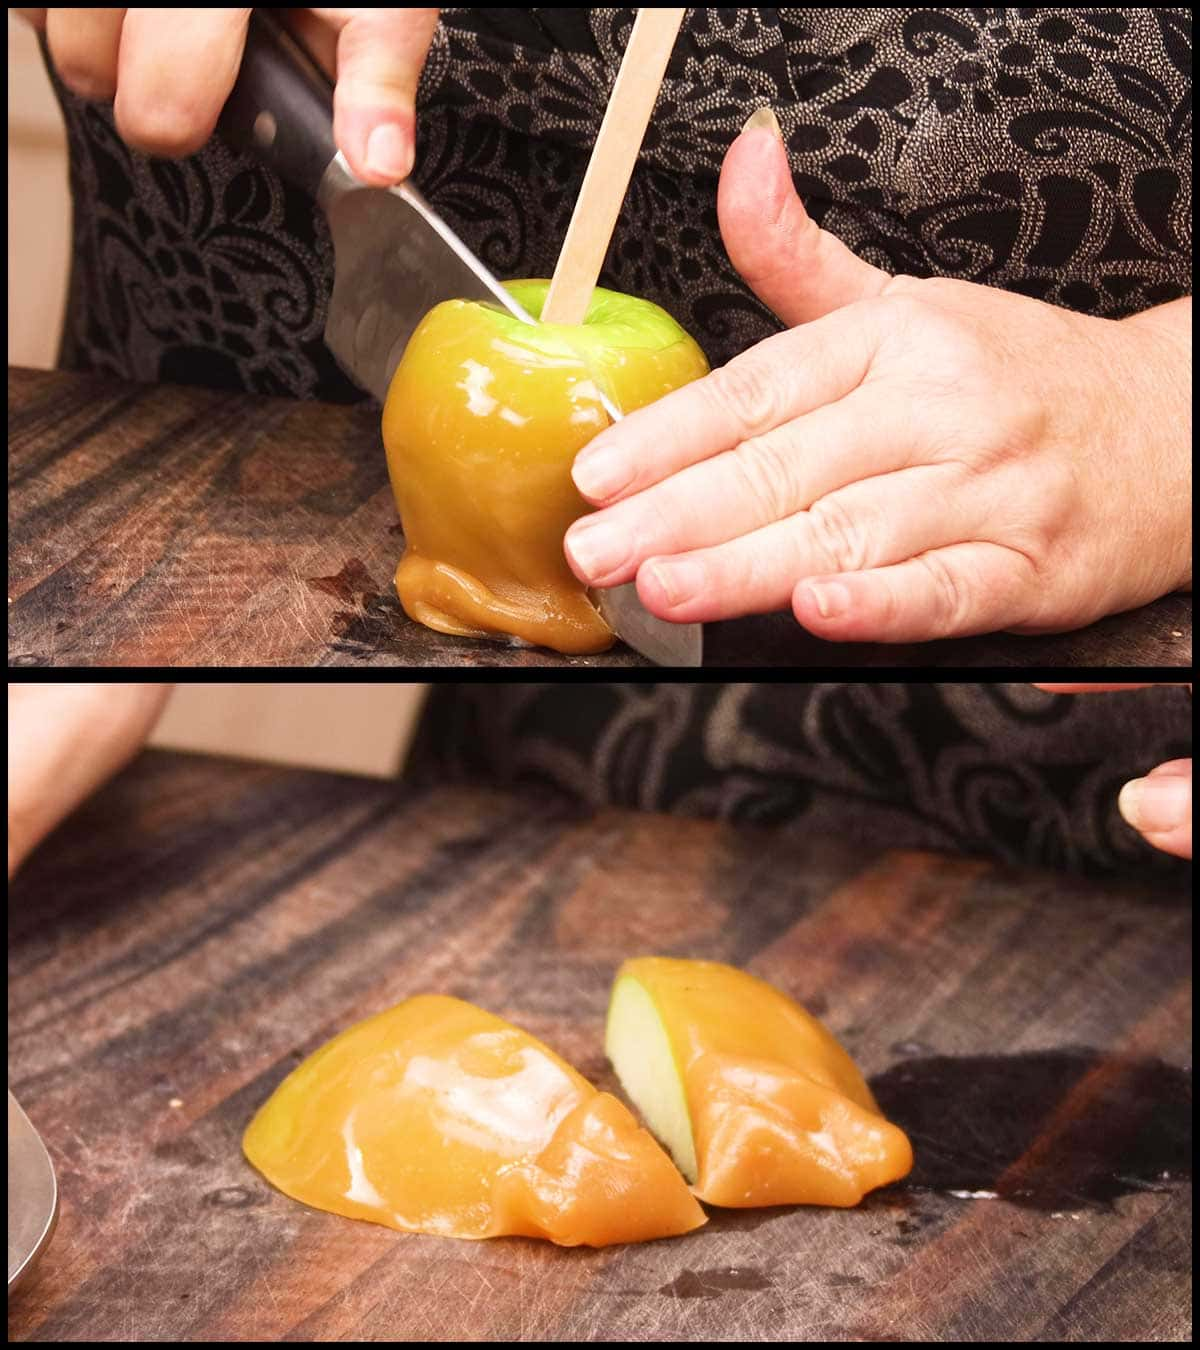 cutting the caramel apple to serve